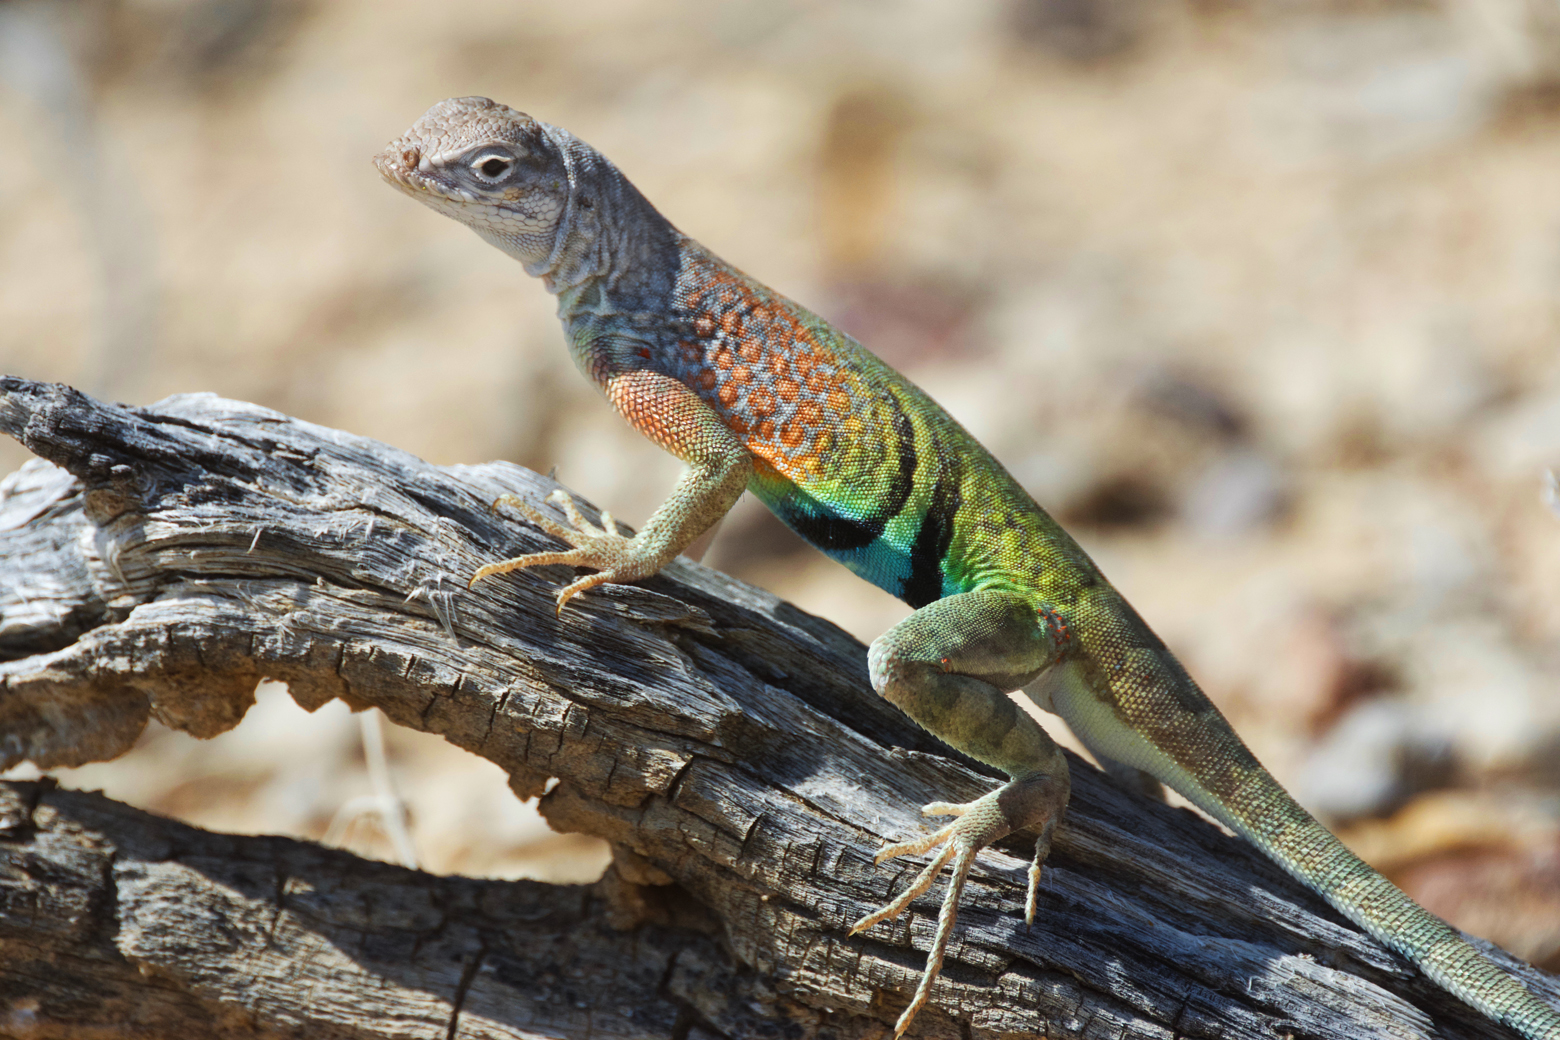 Brightly colored greater earless lizard posing on a branch in Big Bend National Park